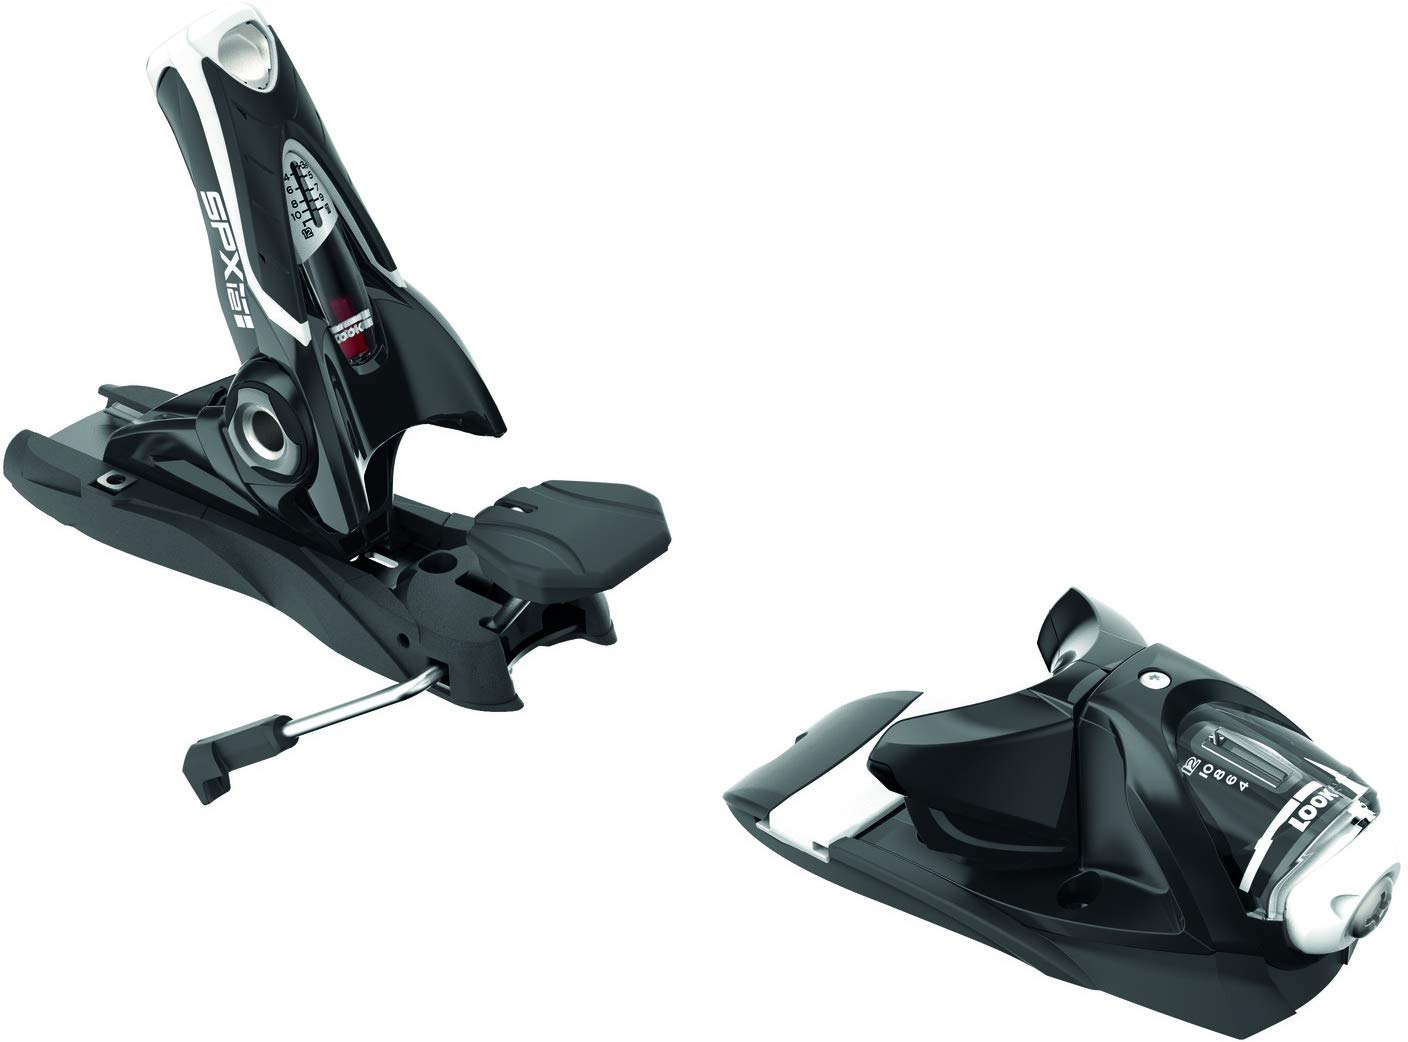 LOOK SPX 12 Dual WTR Ski Bindings Black//White Sz 100mm